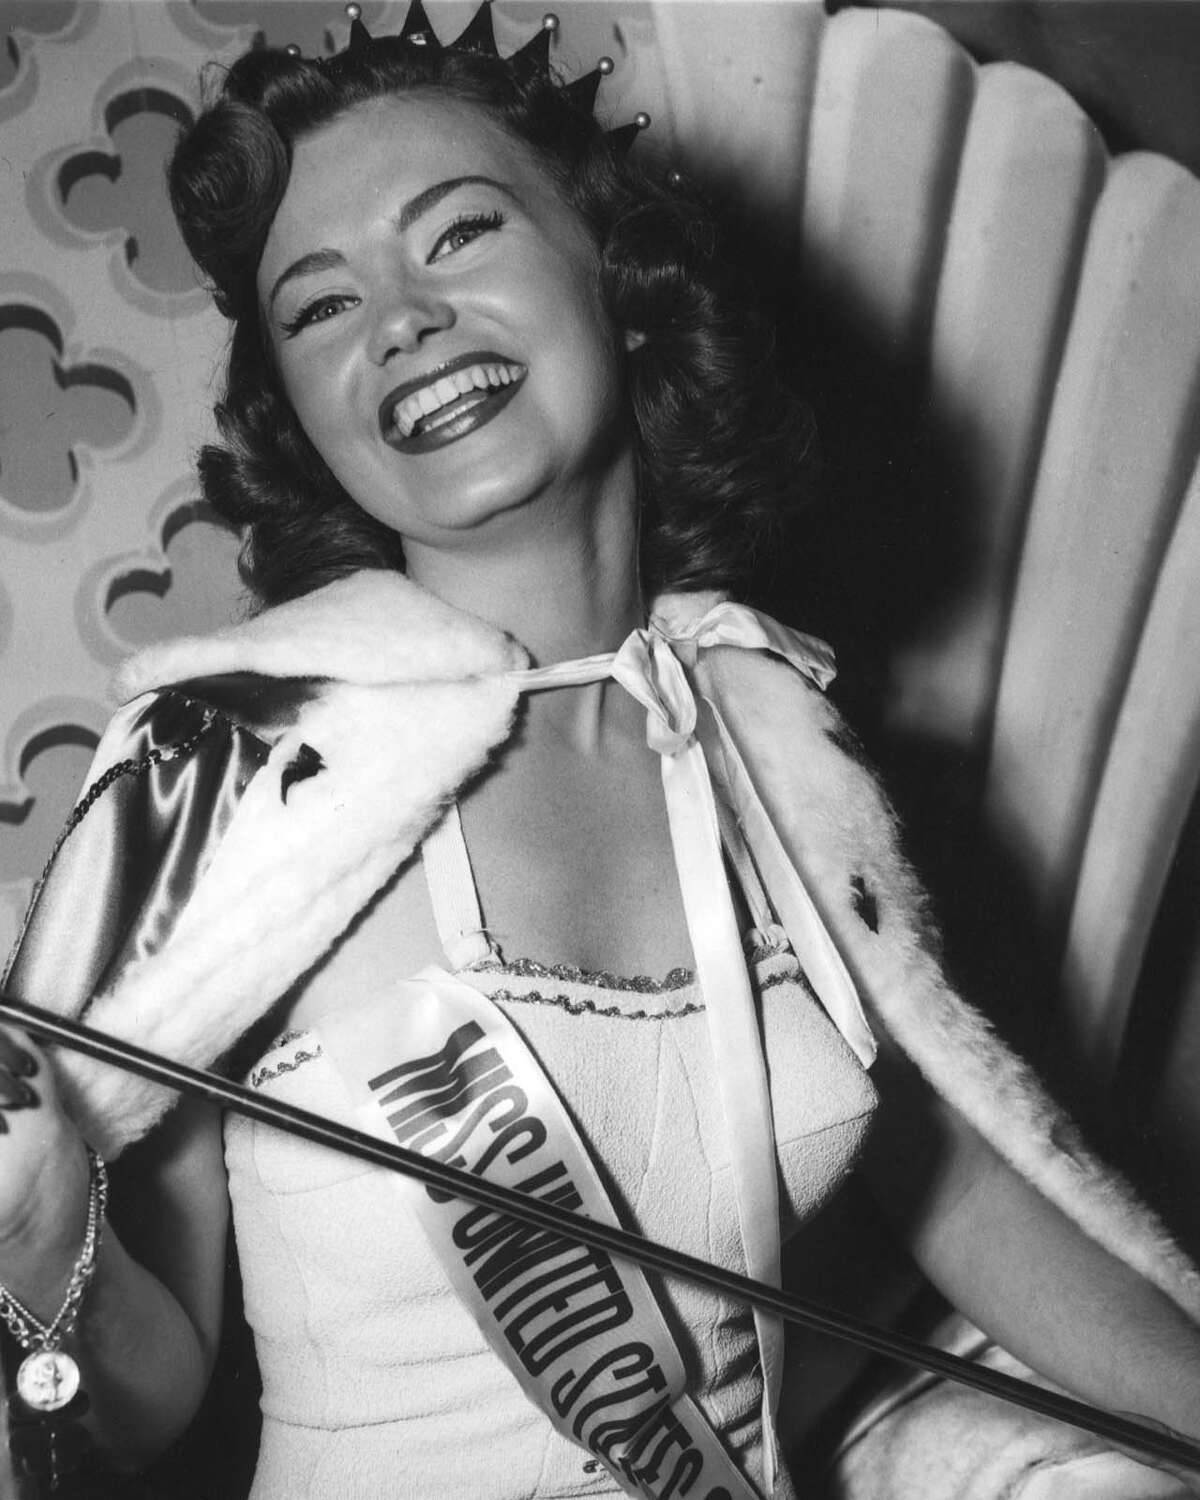 Click ahead to view Miss USA winners through the years. A new Miss USA will be crowned Sunday night. Seventy women have worn the crown, including one for just a few days (disqualification) and four others for less than a year because they went on to greater glories (Miss Universe). The first Miss USA was crowned in 1952; she was Jackie Loughery, 21, a 5-foot-4 redhead from Brooklyn, N.Y. The pageant was created when the Miss America pageant objected to the styles offered by a swimwear sponsor; the miffed sponsor started its own pageant and housed it in Long Beach, Calif. It simultaneously created the Miss Universe contest, which began the day after the Miss USA pageant in those early days.